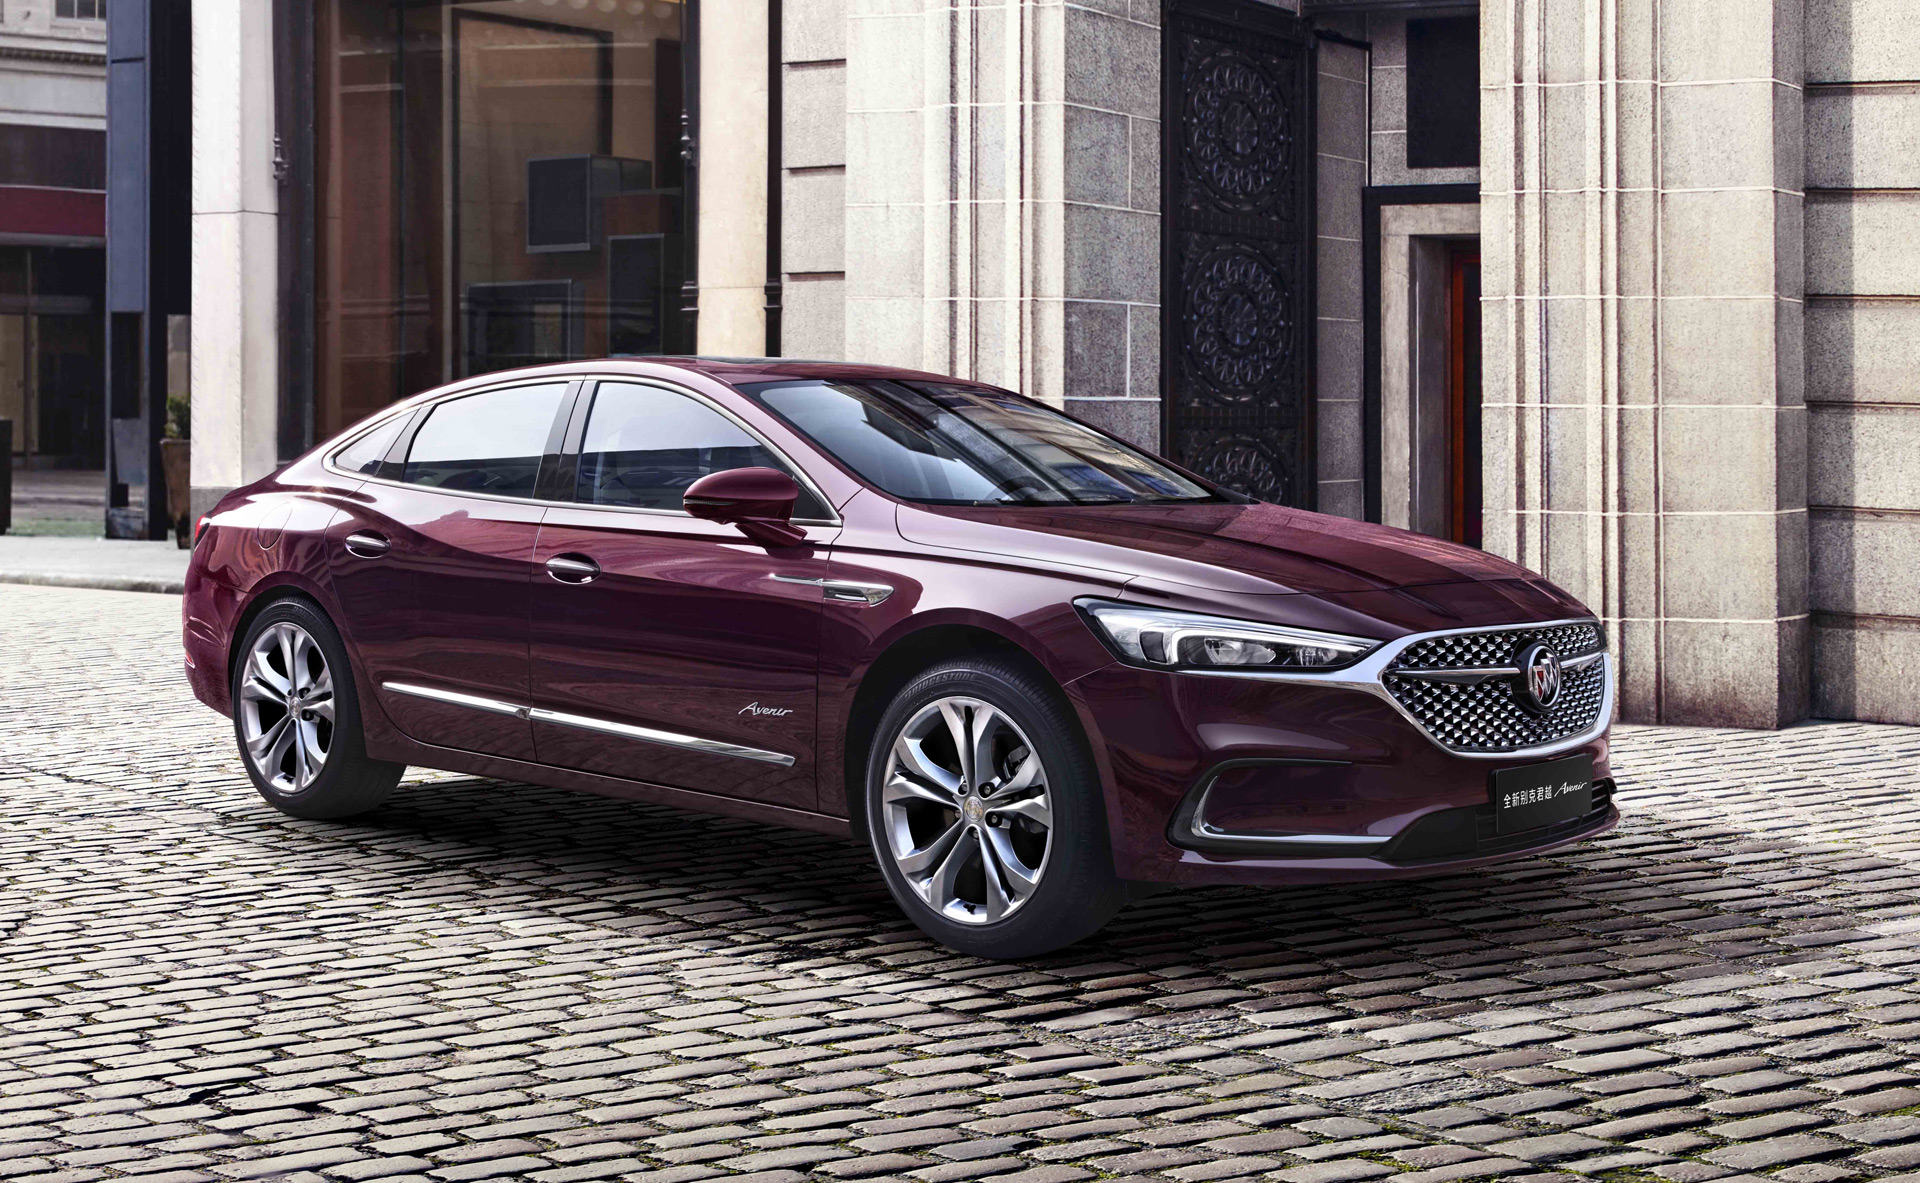 2020 Buick Lacrosse Made Handsome Just As It's Dropped In Us Will There Be A New 2022 Buick Lacrosse